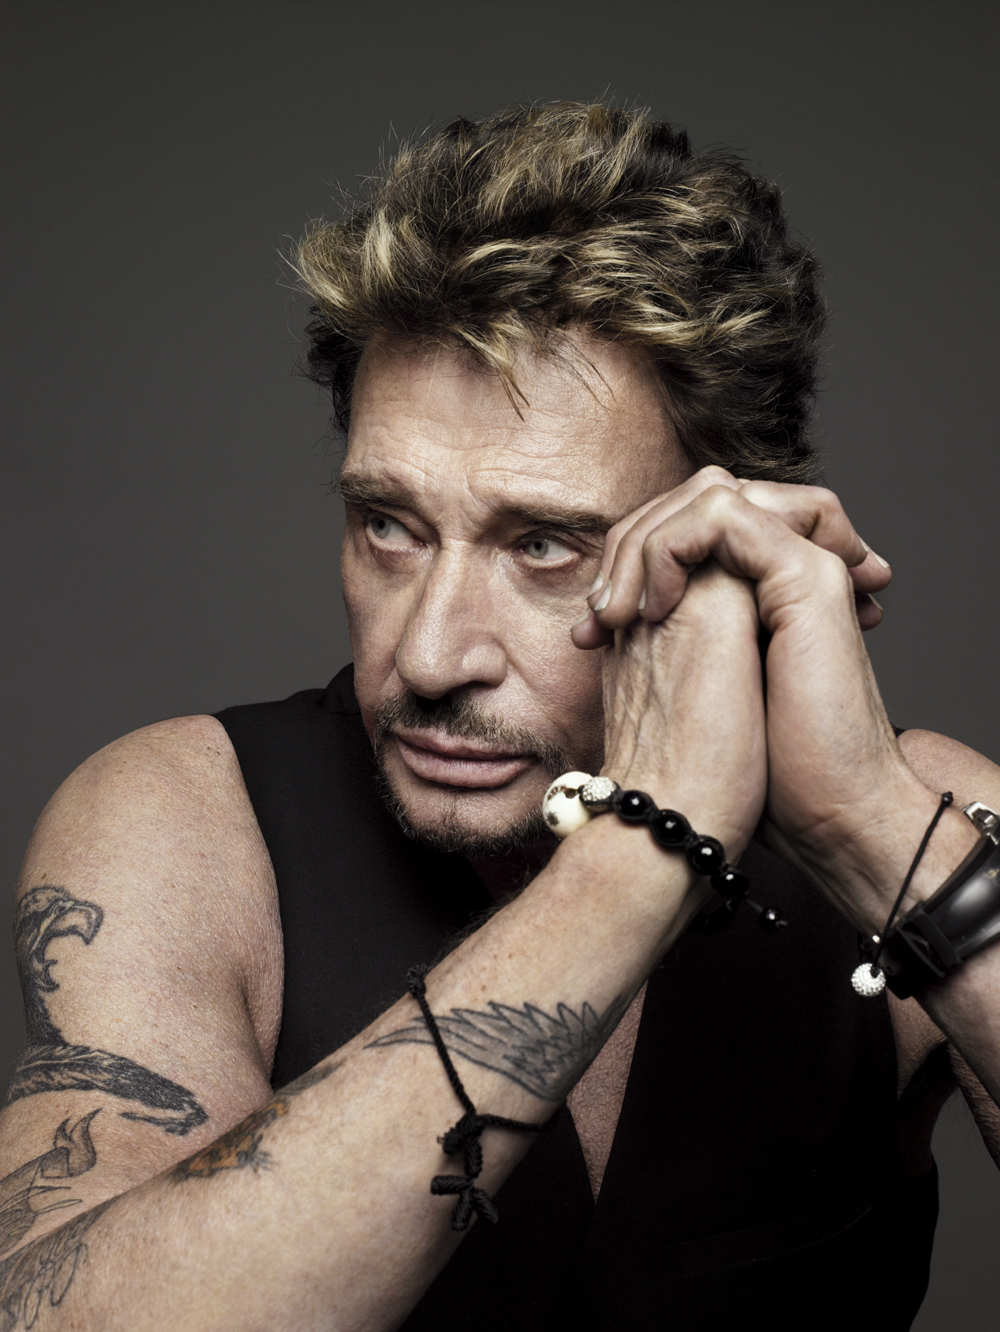 Les Tatouages De Johnny Hallyday Johnny Hallyday